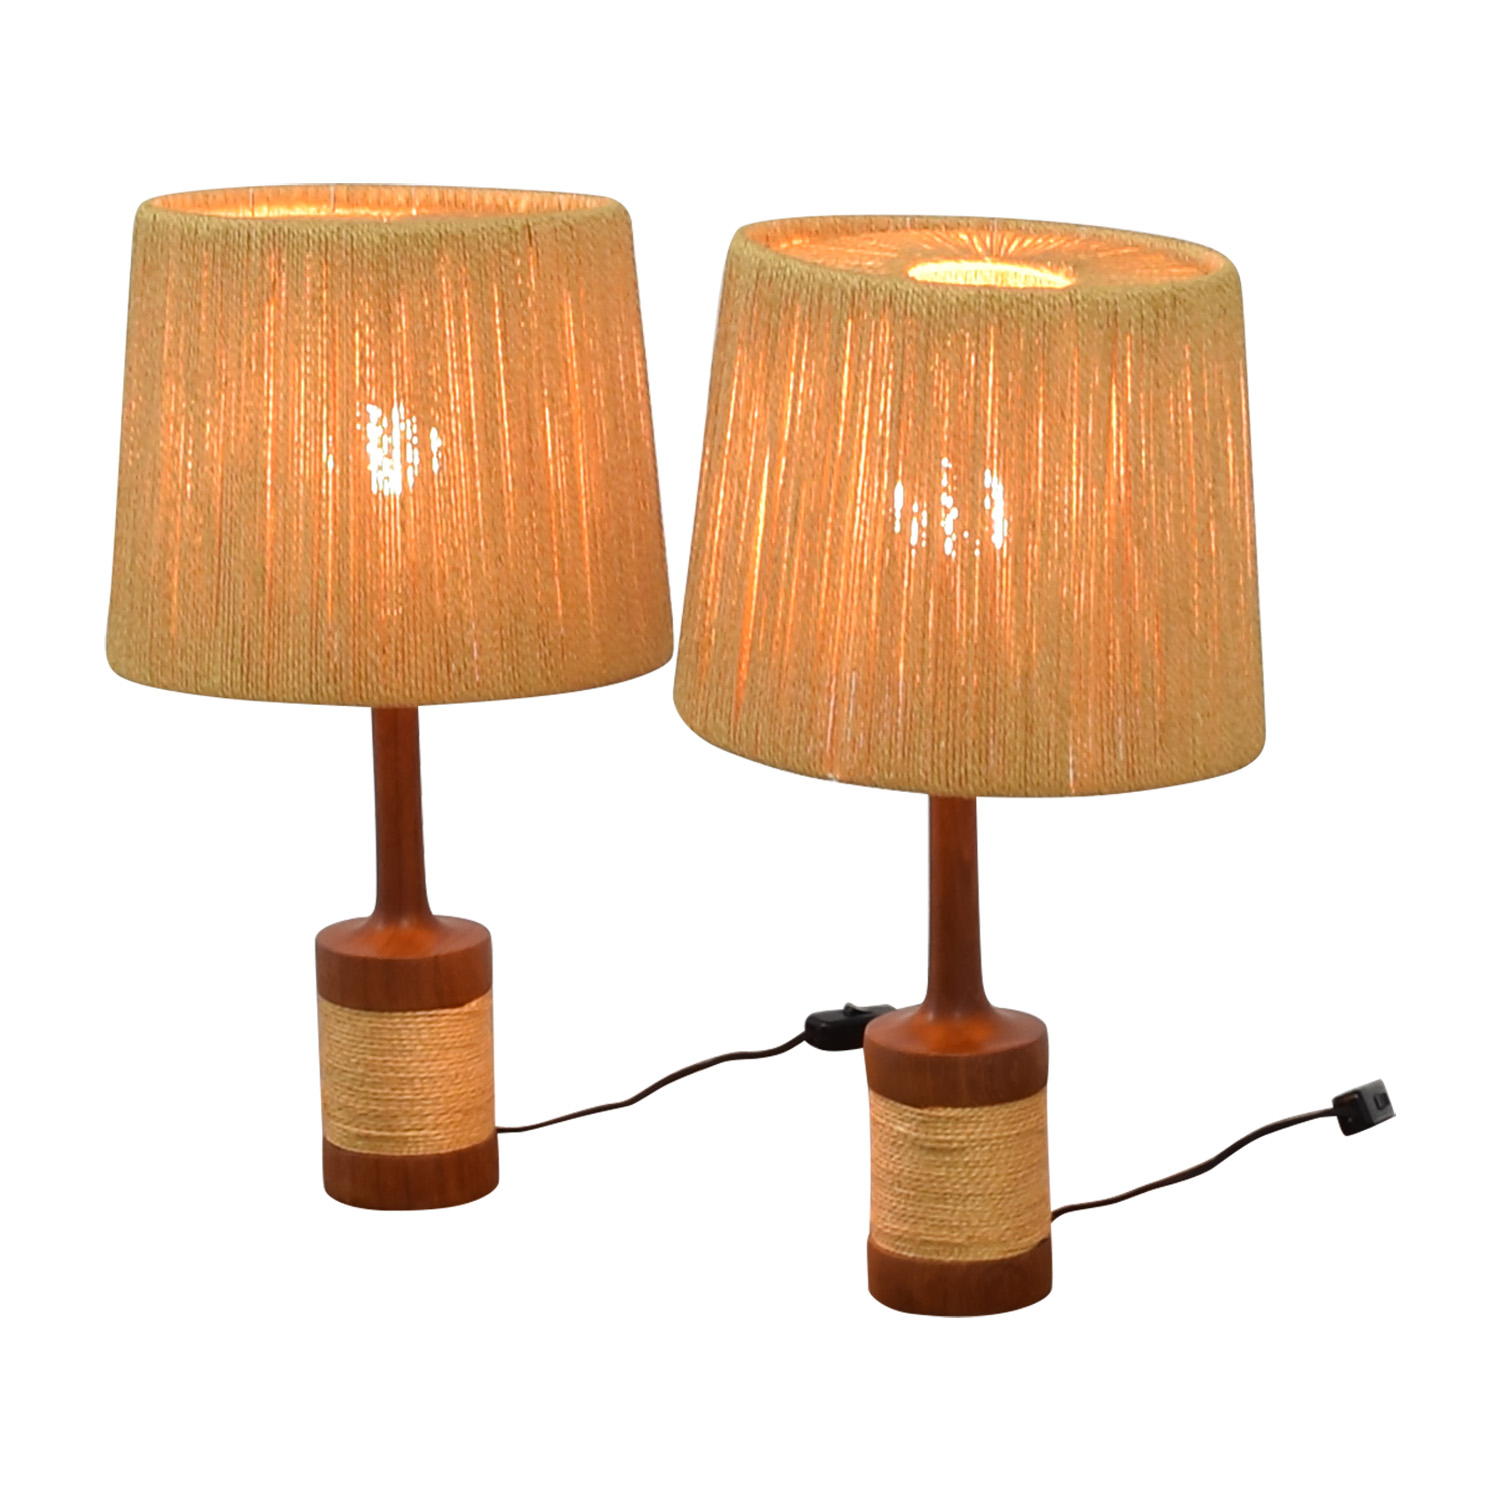 Sisal and Wood Table Lamps discount